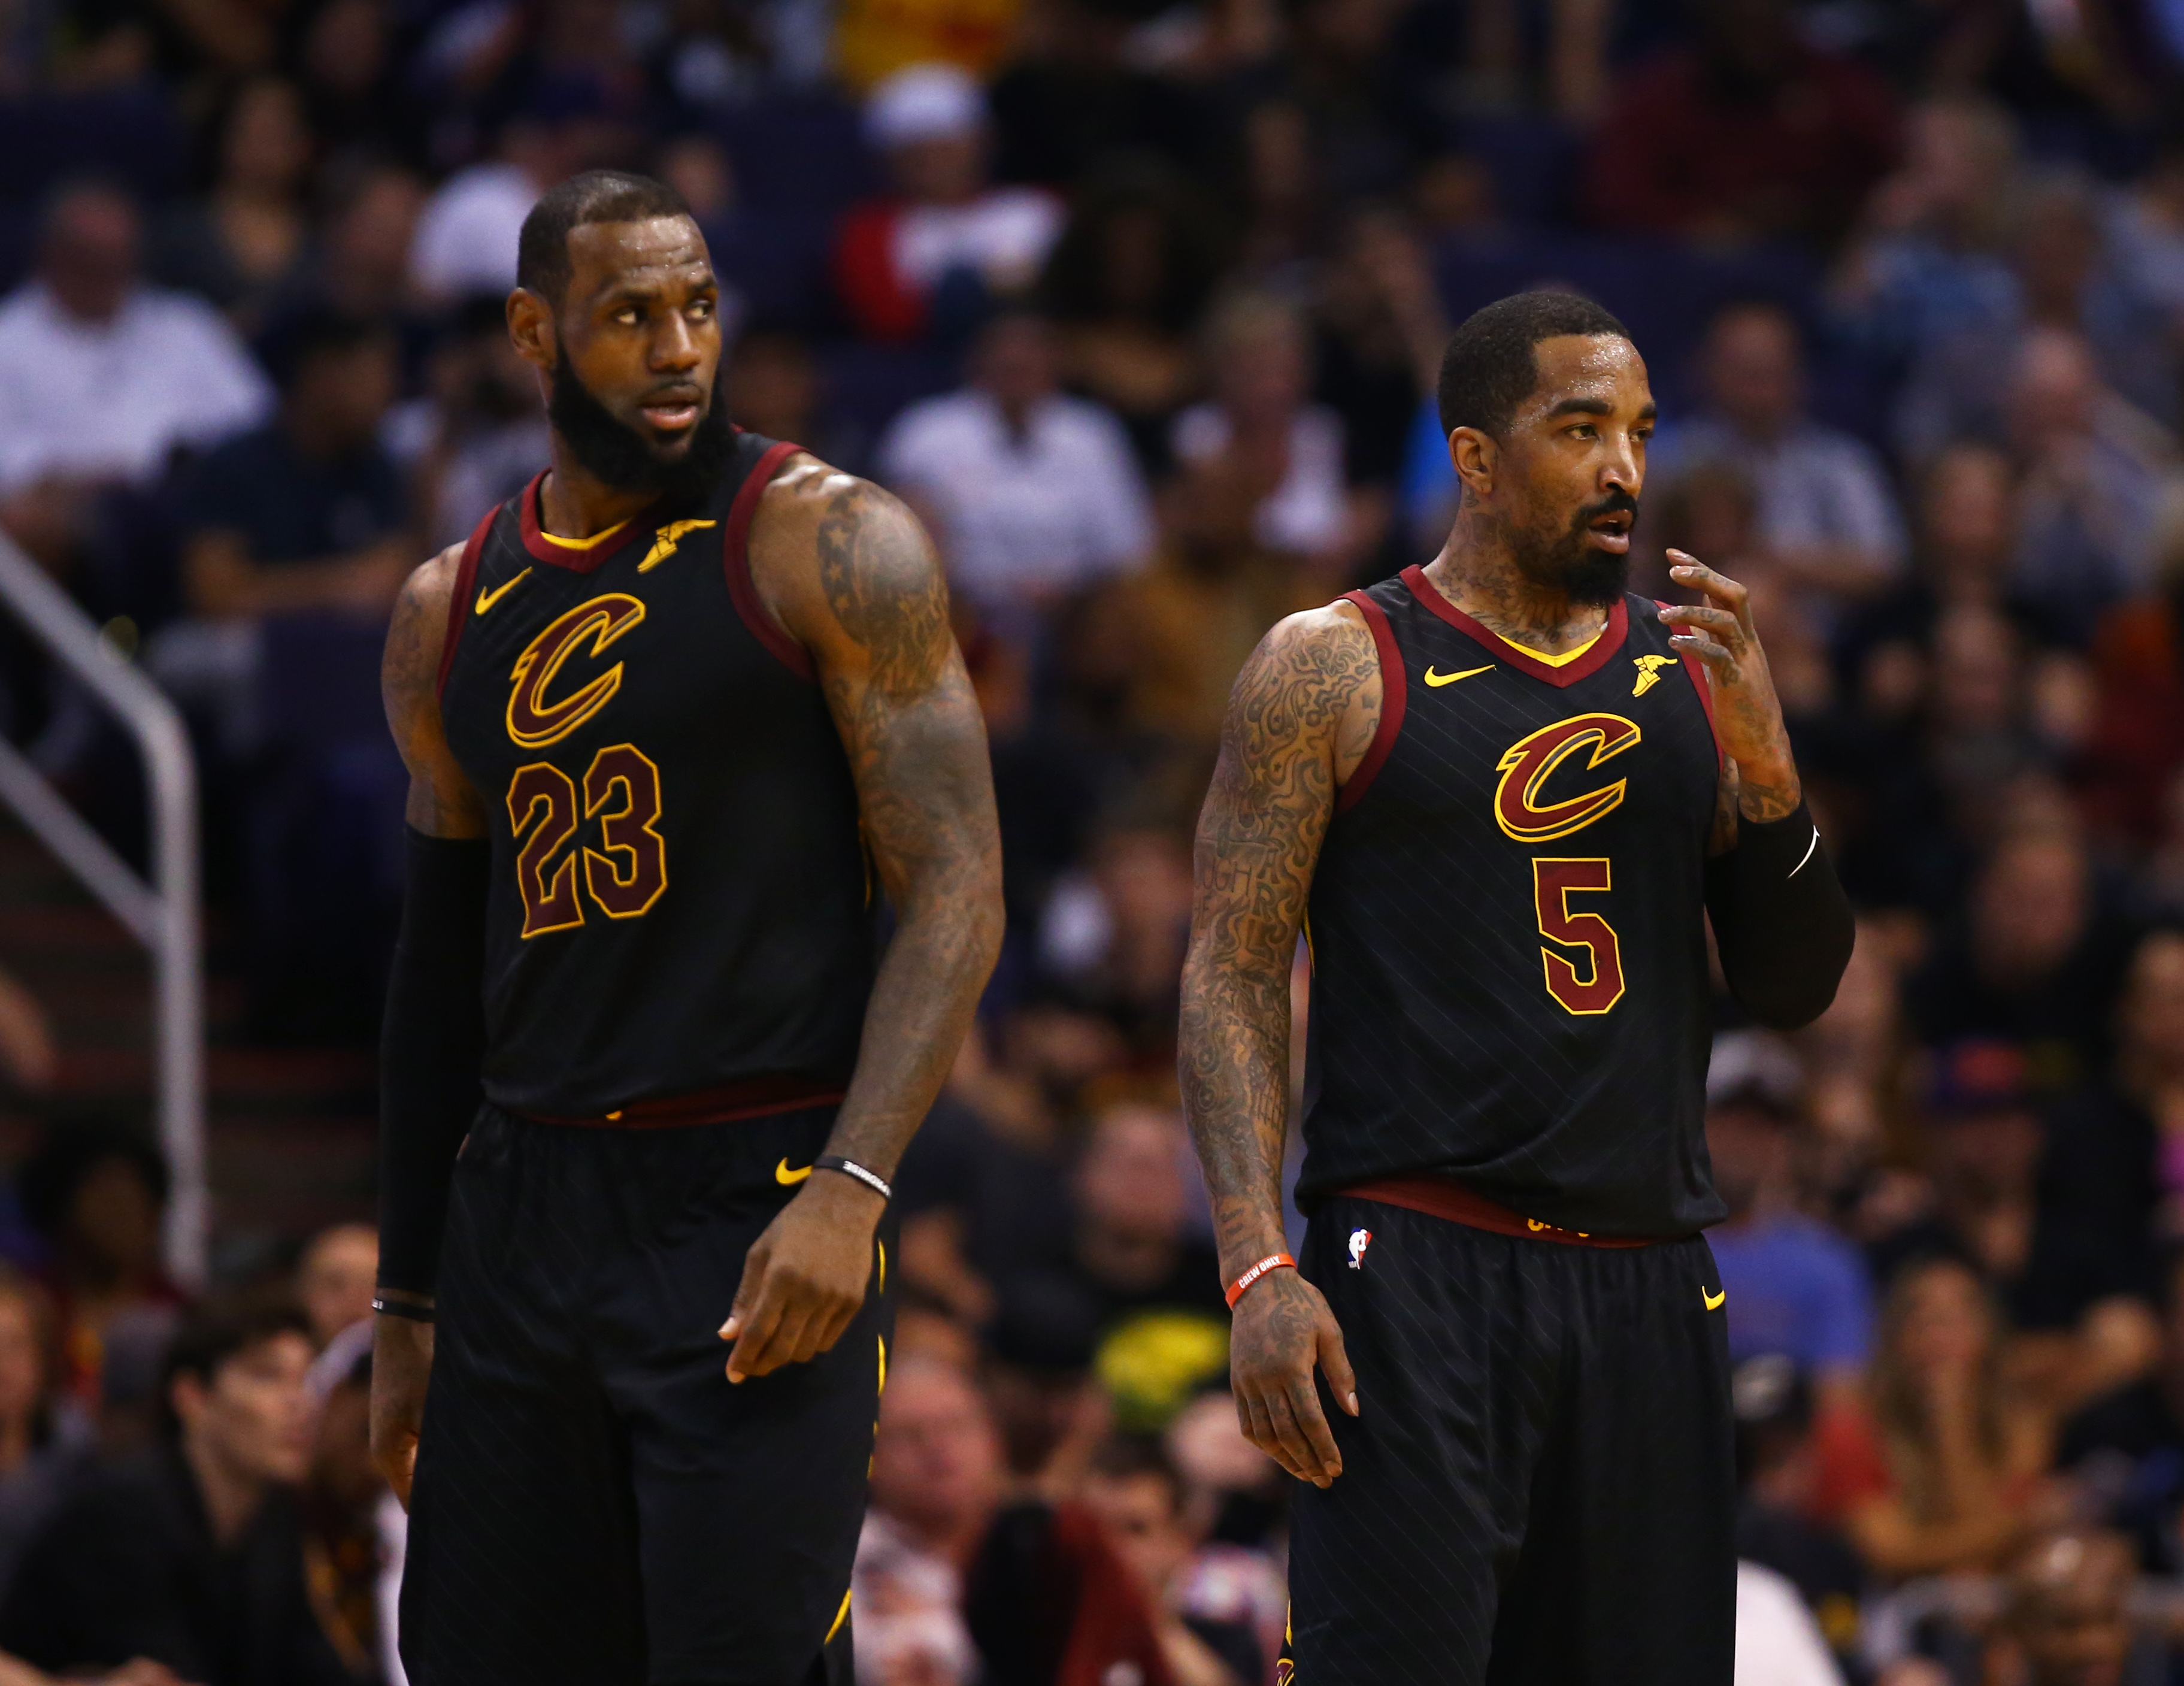 Cleveland Cavaliers forward LeBron James and guard J.R. Smith against the Phoenix Suns at Talking Stick Resort Arena.